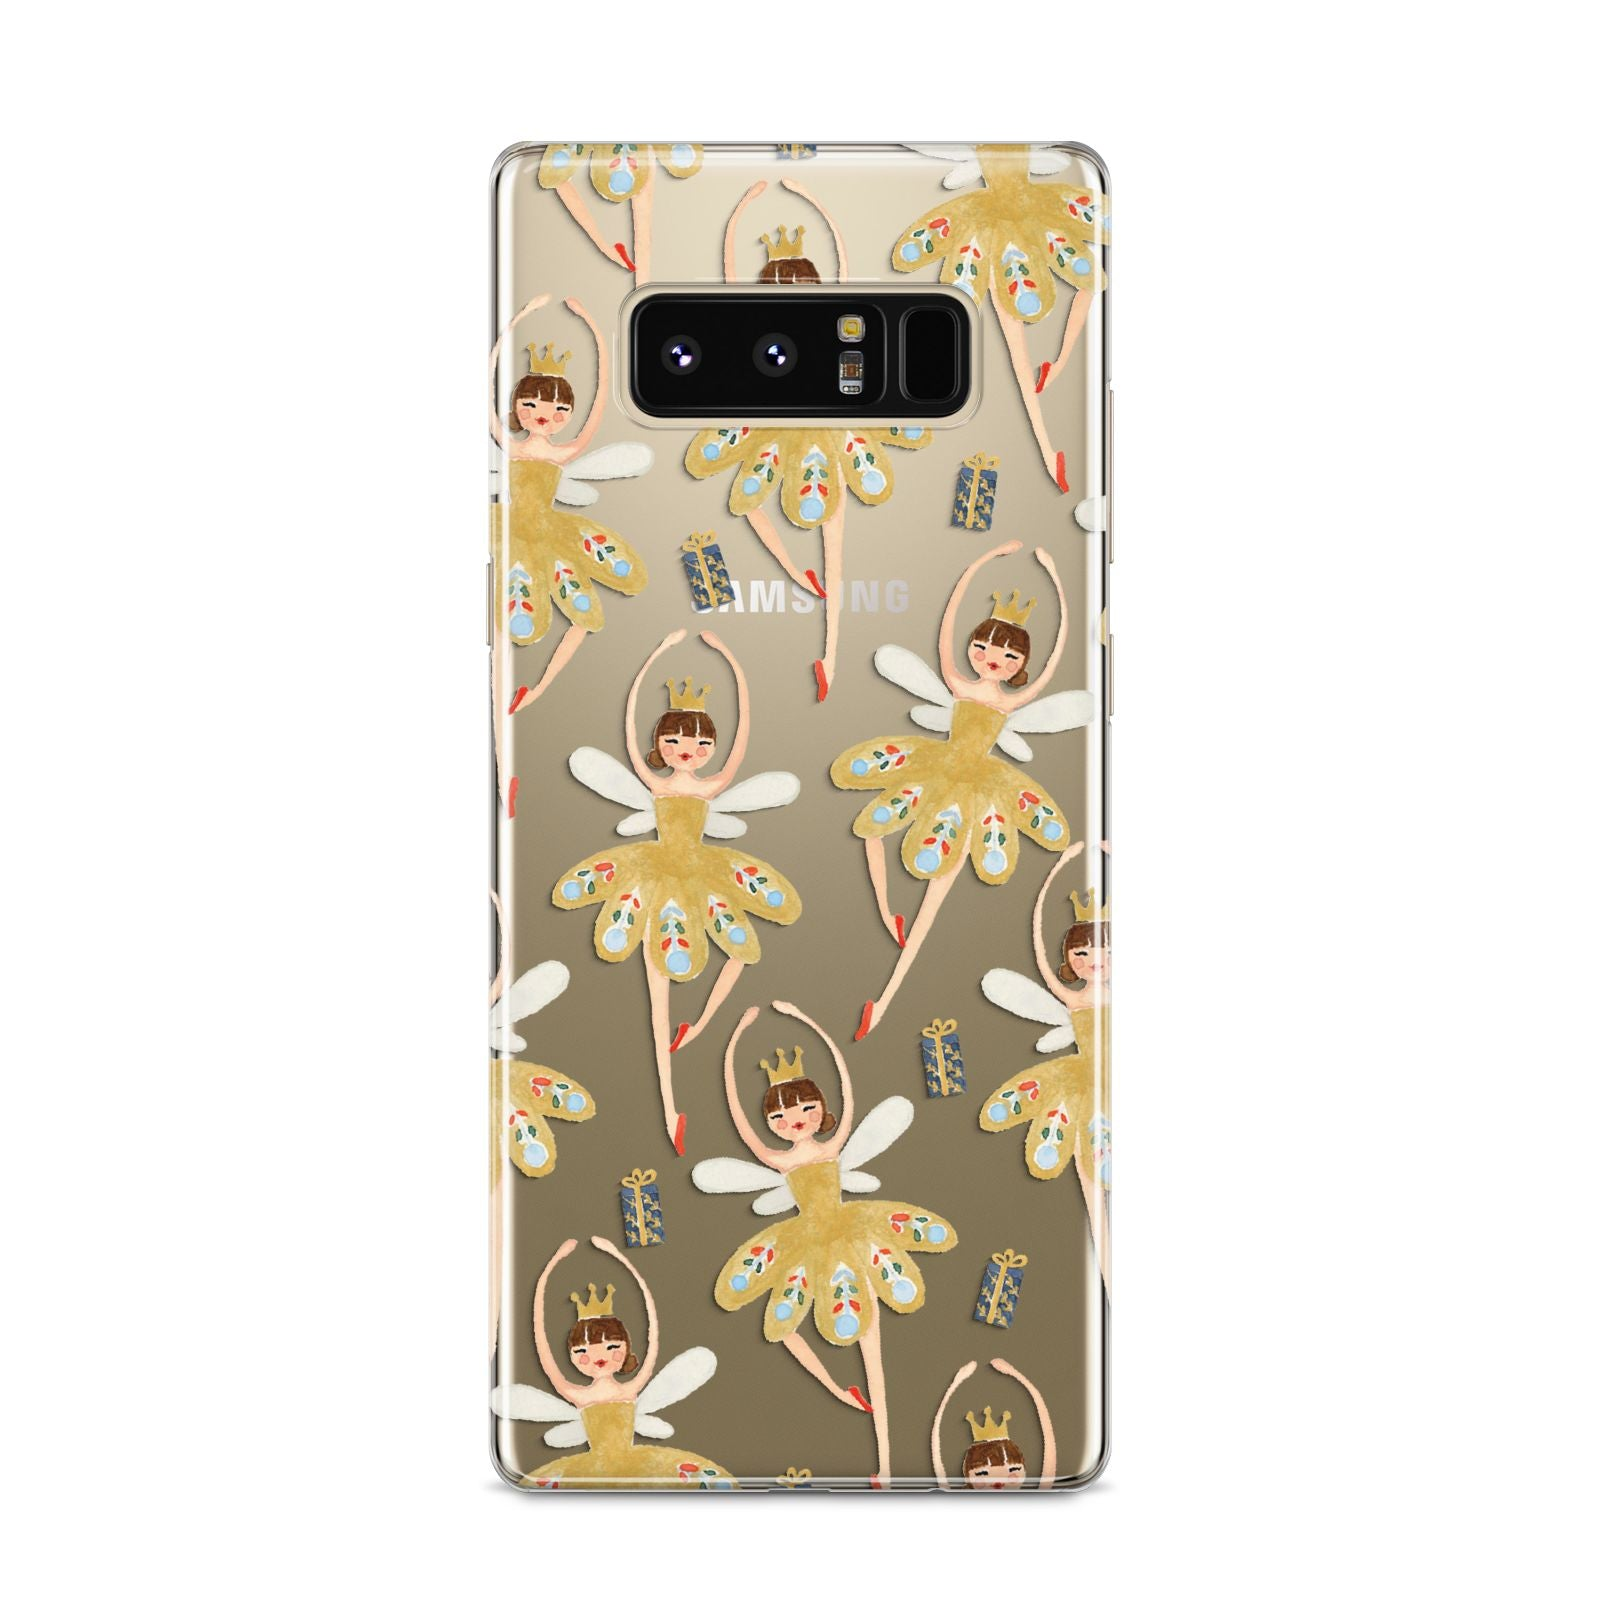 Dancing ballerina princess Samsung Galaxy S8 Case